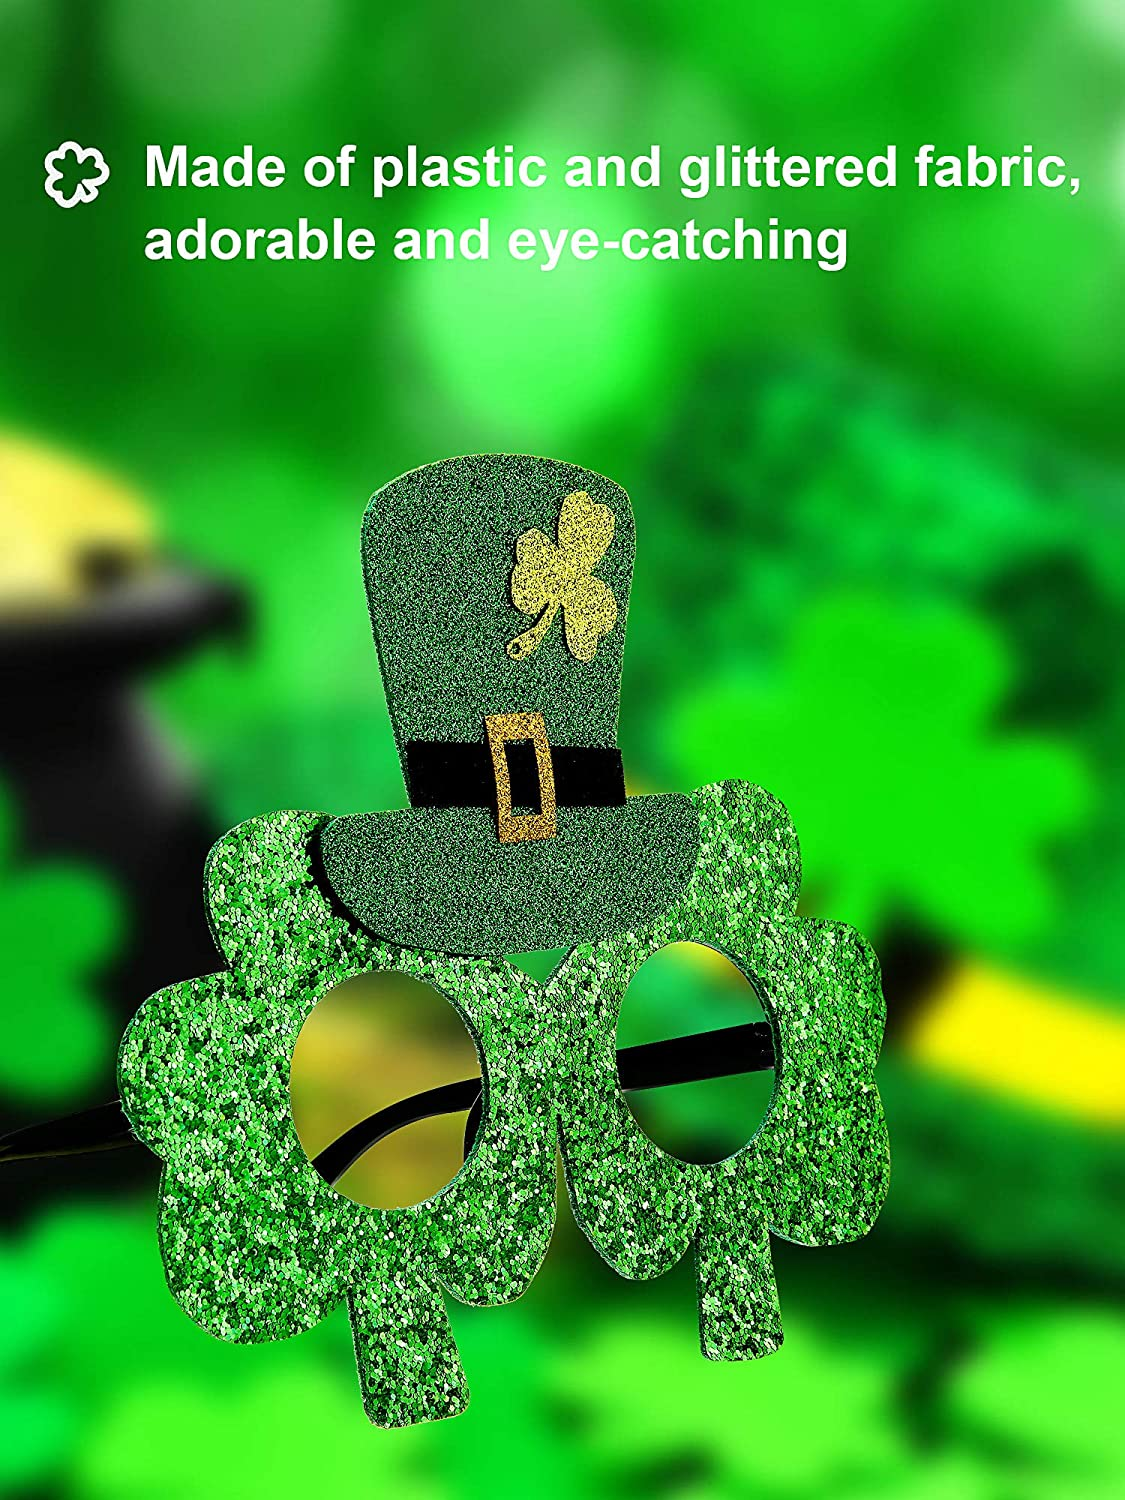 Patrick/'s Day Costume Party Accessories 8 Pairs St Patrick/'s Day Shamrock Glasses Irish Eyeglasses Green Frames Clover Glasses St